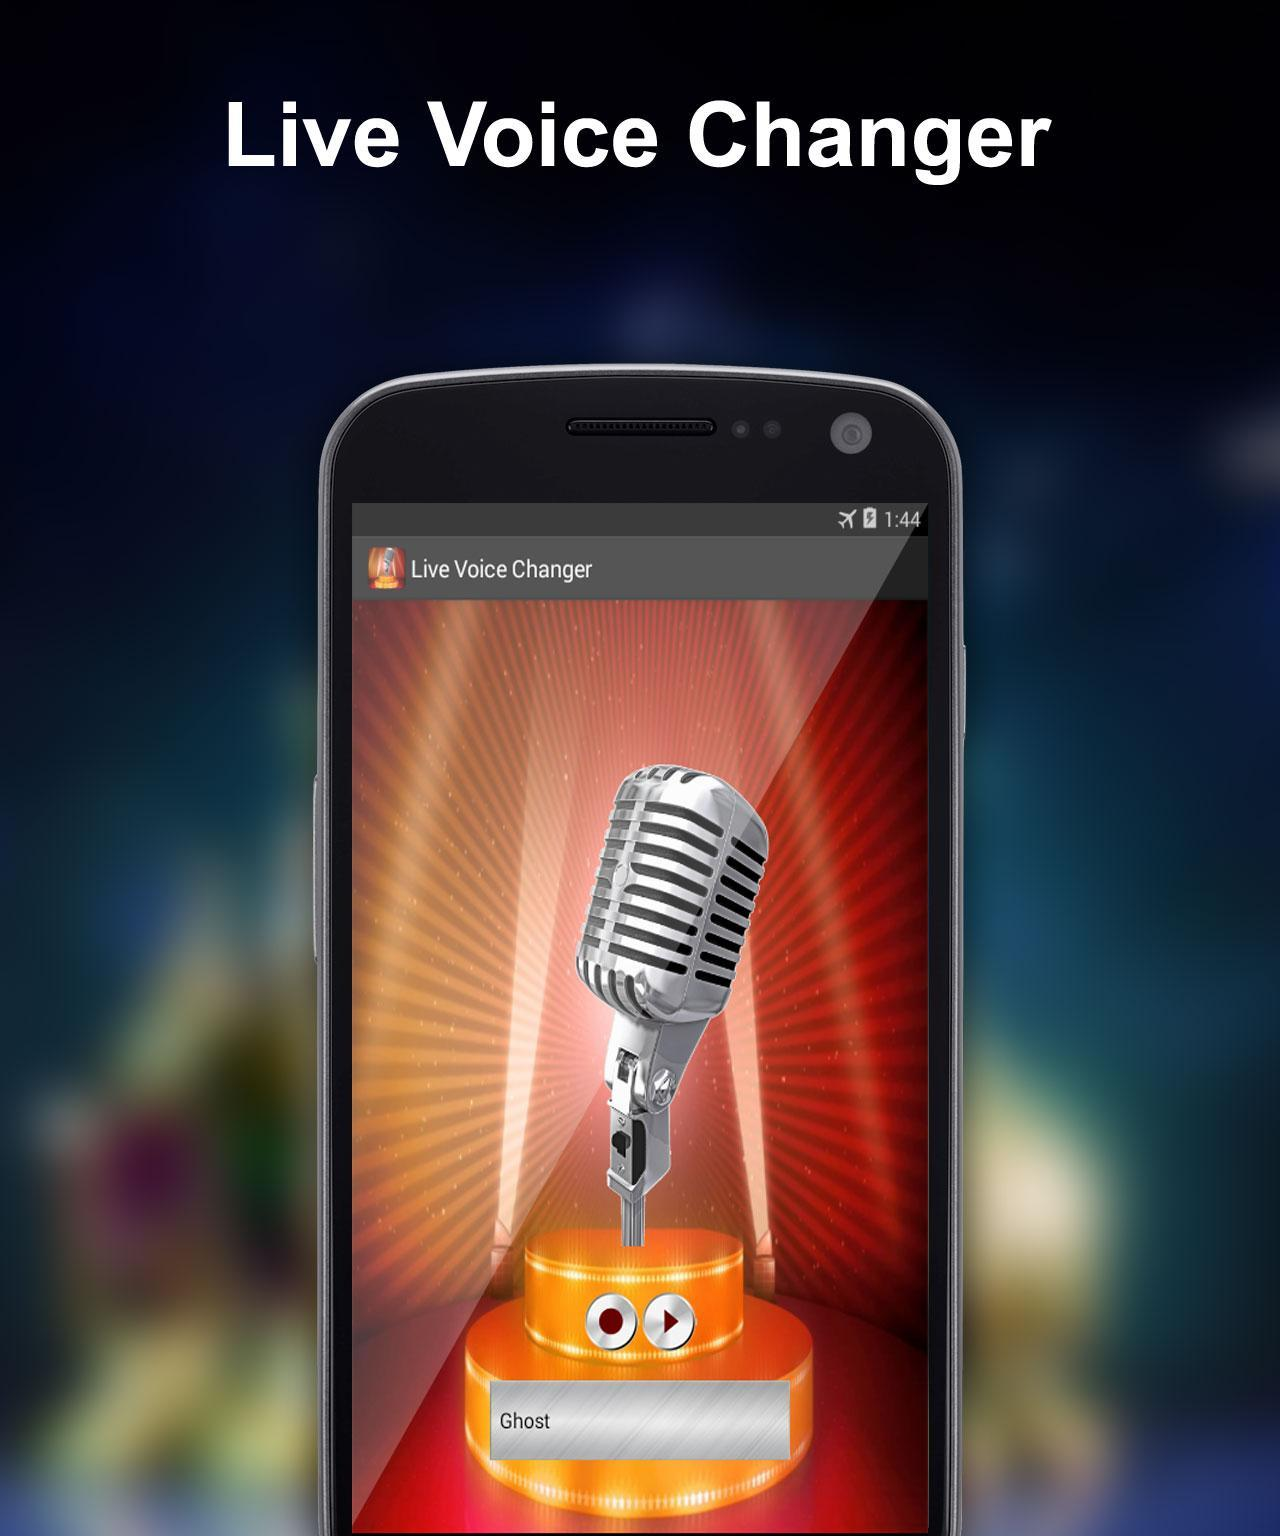 Live Voice Changer for Android - APK Download